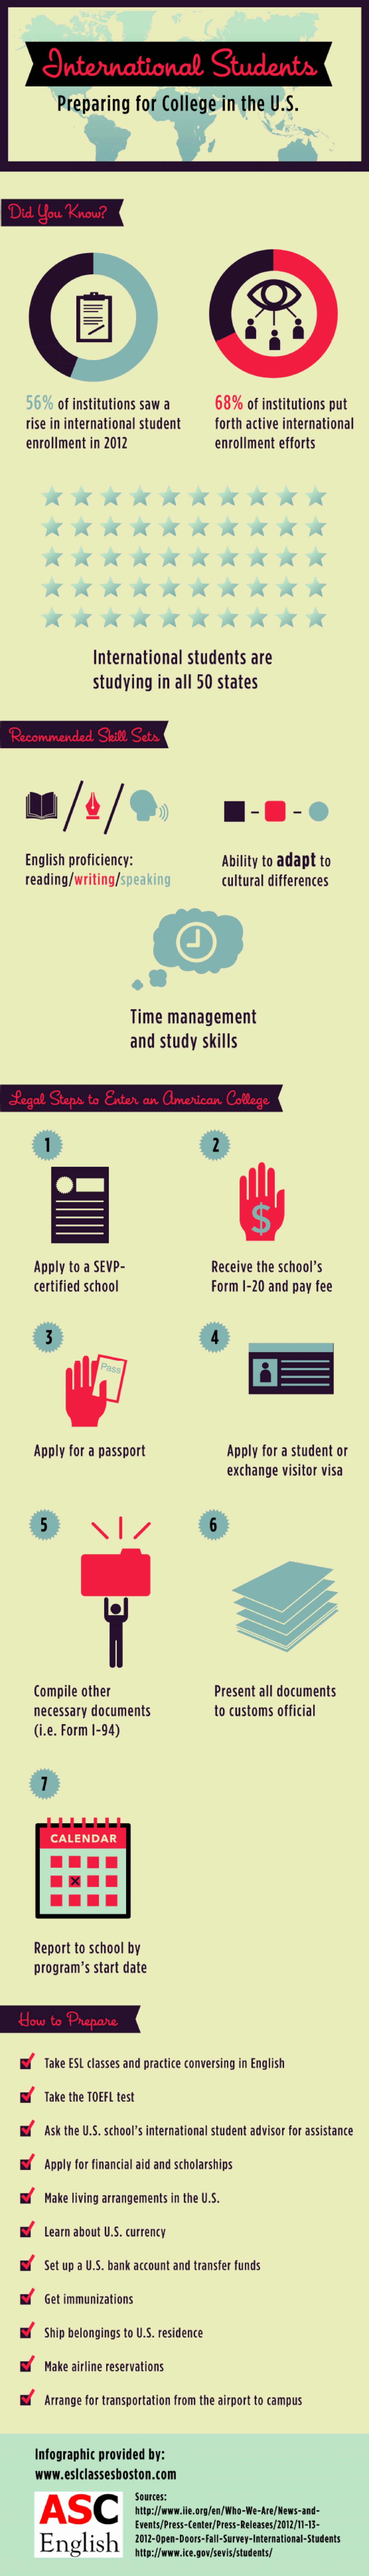 International Students Preparing for College in the U.s. Infographic